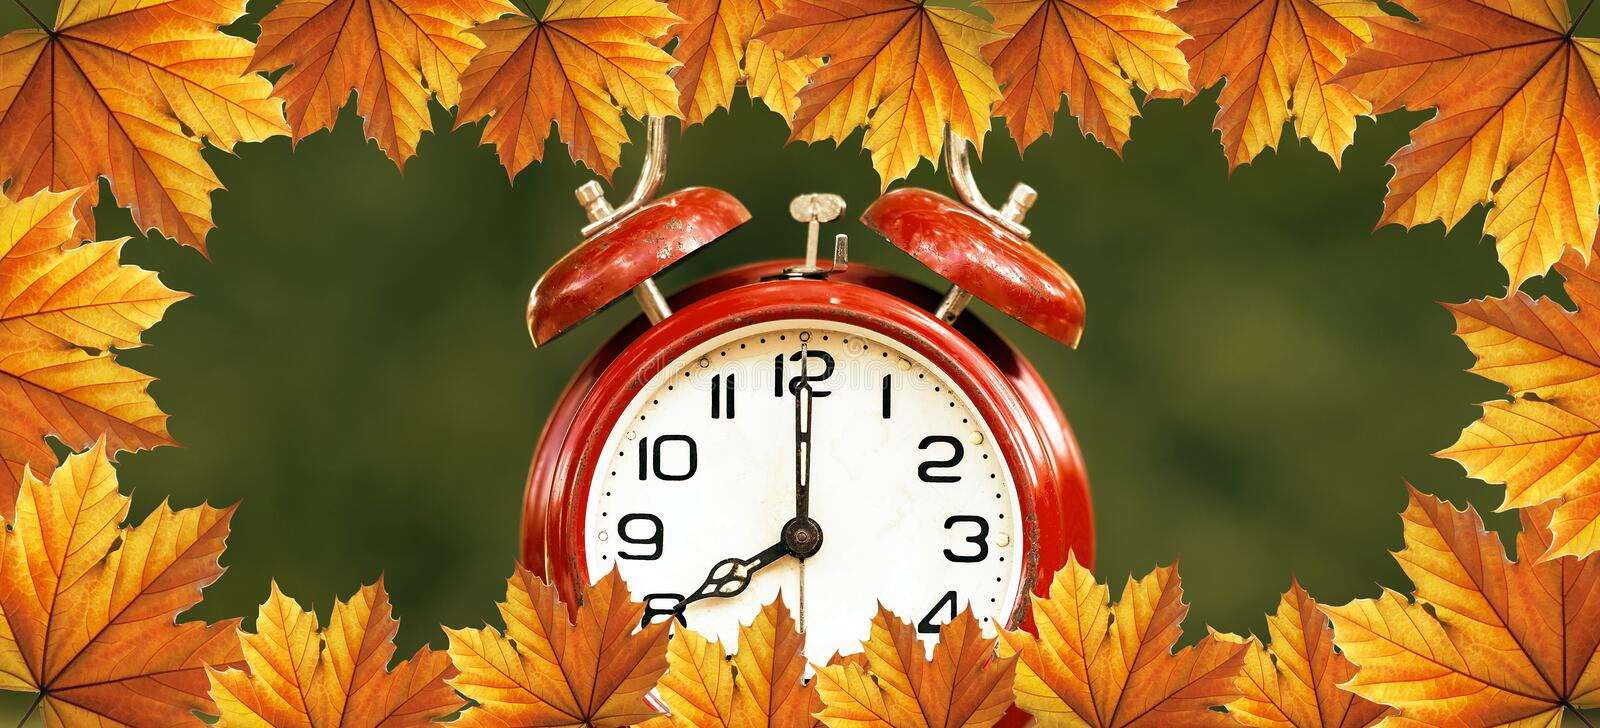 Daylight savings time in autumn - web banner royalty free stock photos